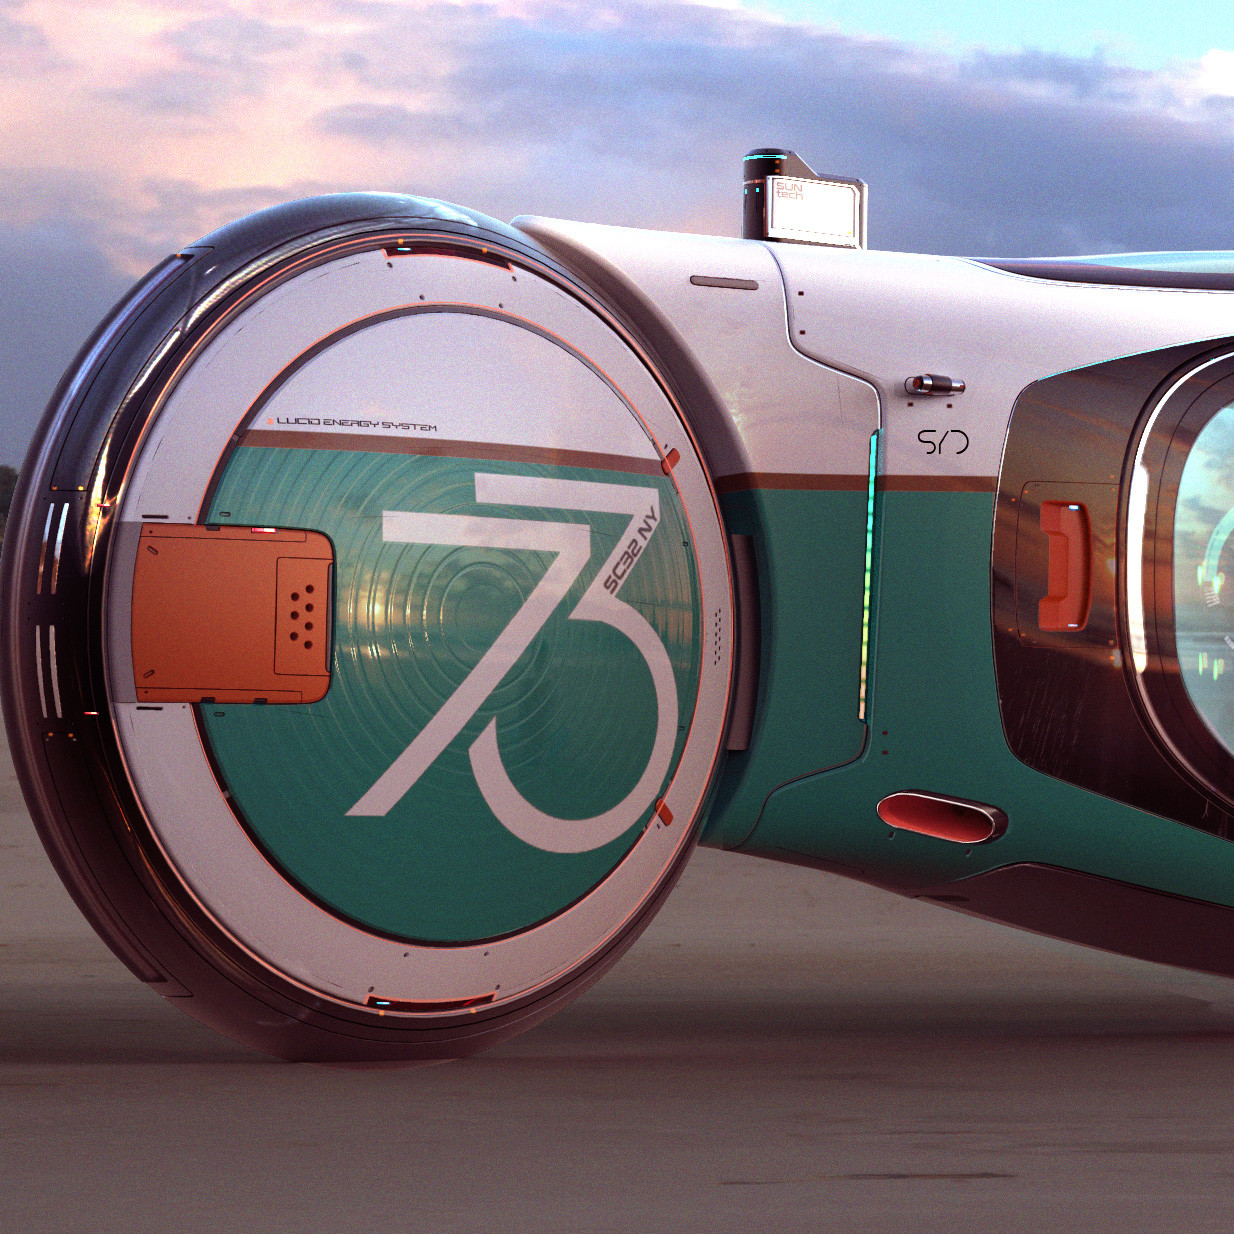 Two Wheeled Autonomous Vehicle - Homage to Syd Mead